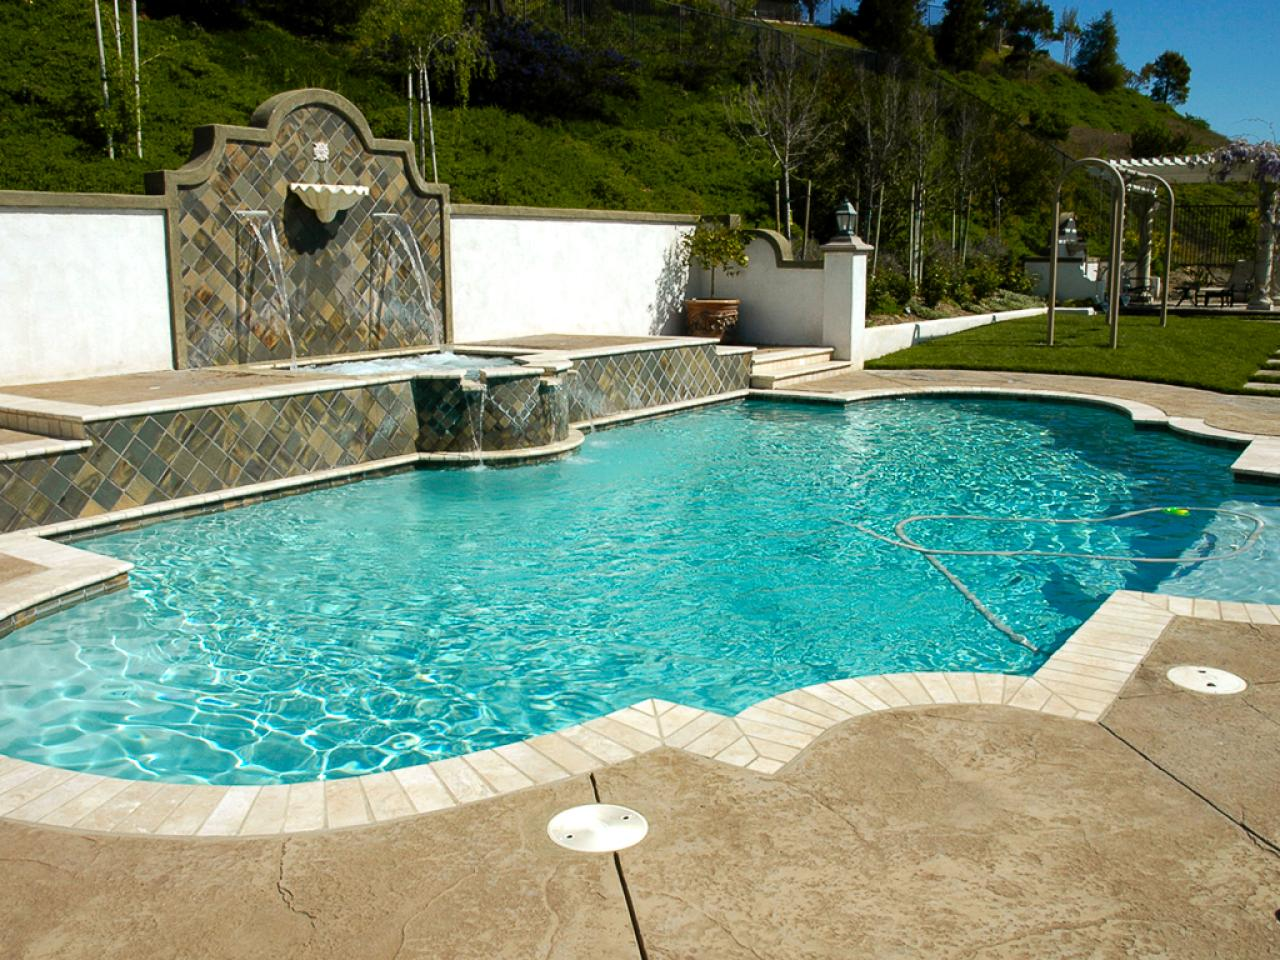 Mediterranean inspired swimming pools outdoor spaces patio ideas decks gardens hgtv - Outdoor decoratie zwembad ...